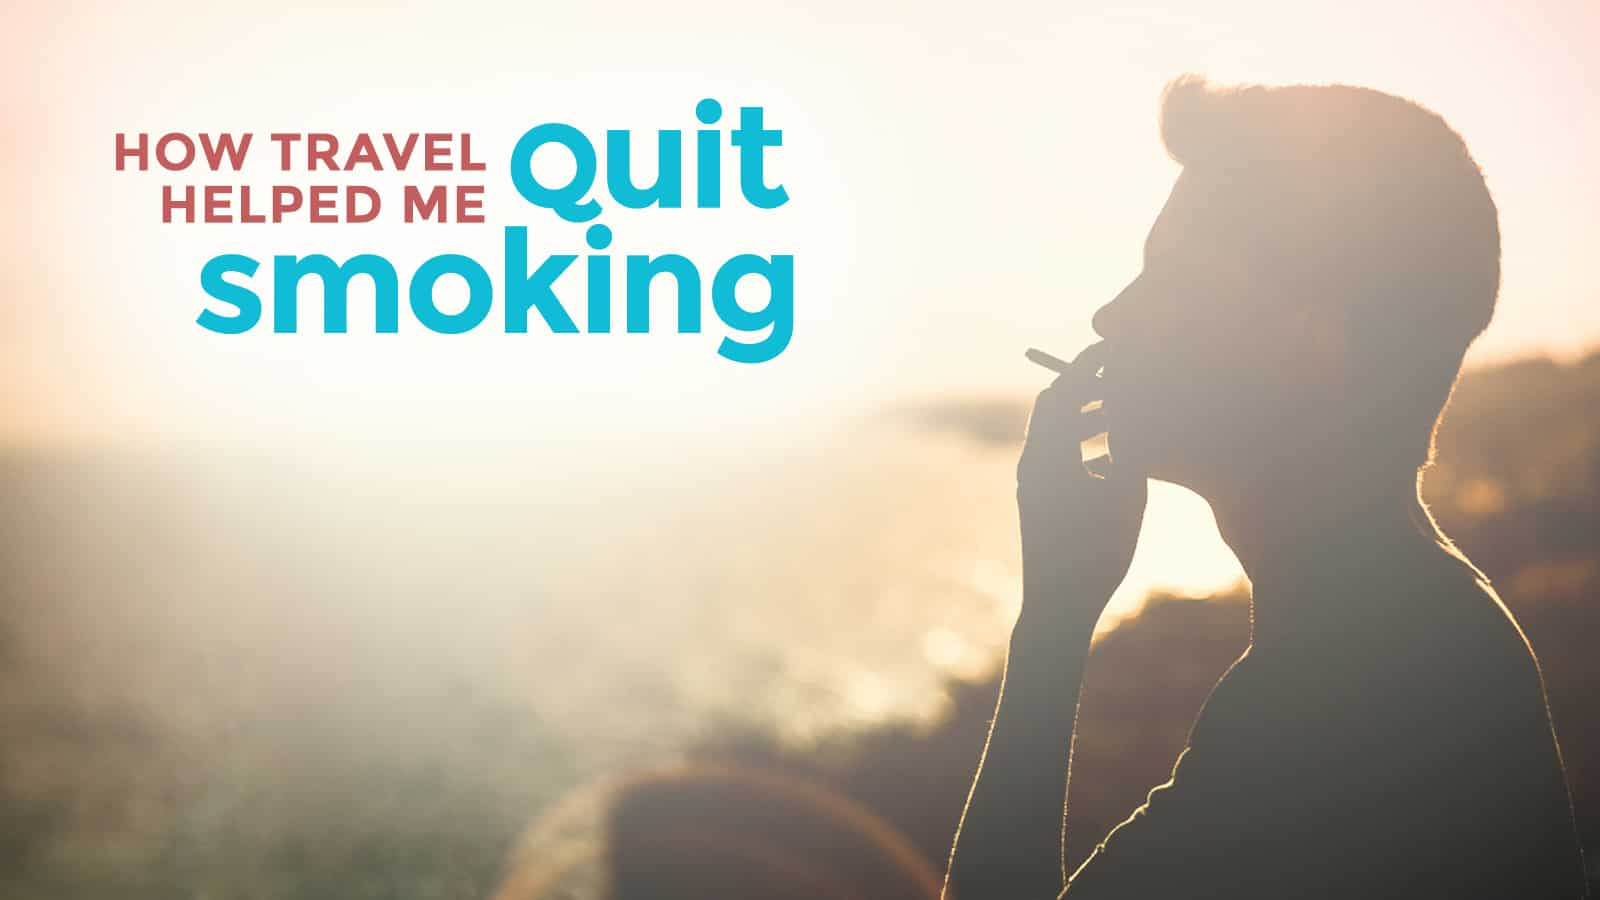 How Travel Helped Me Quit Smoking